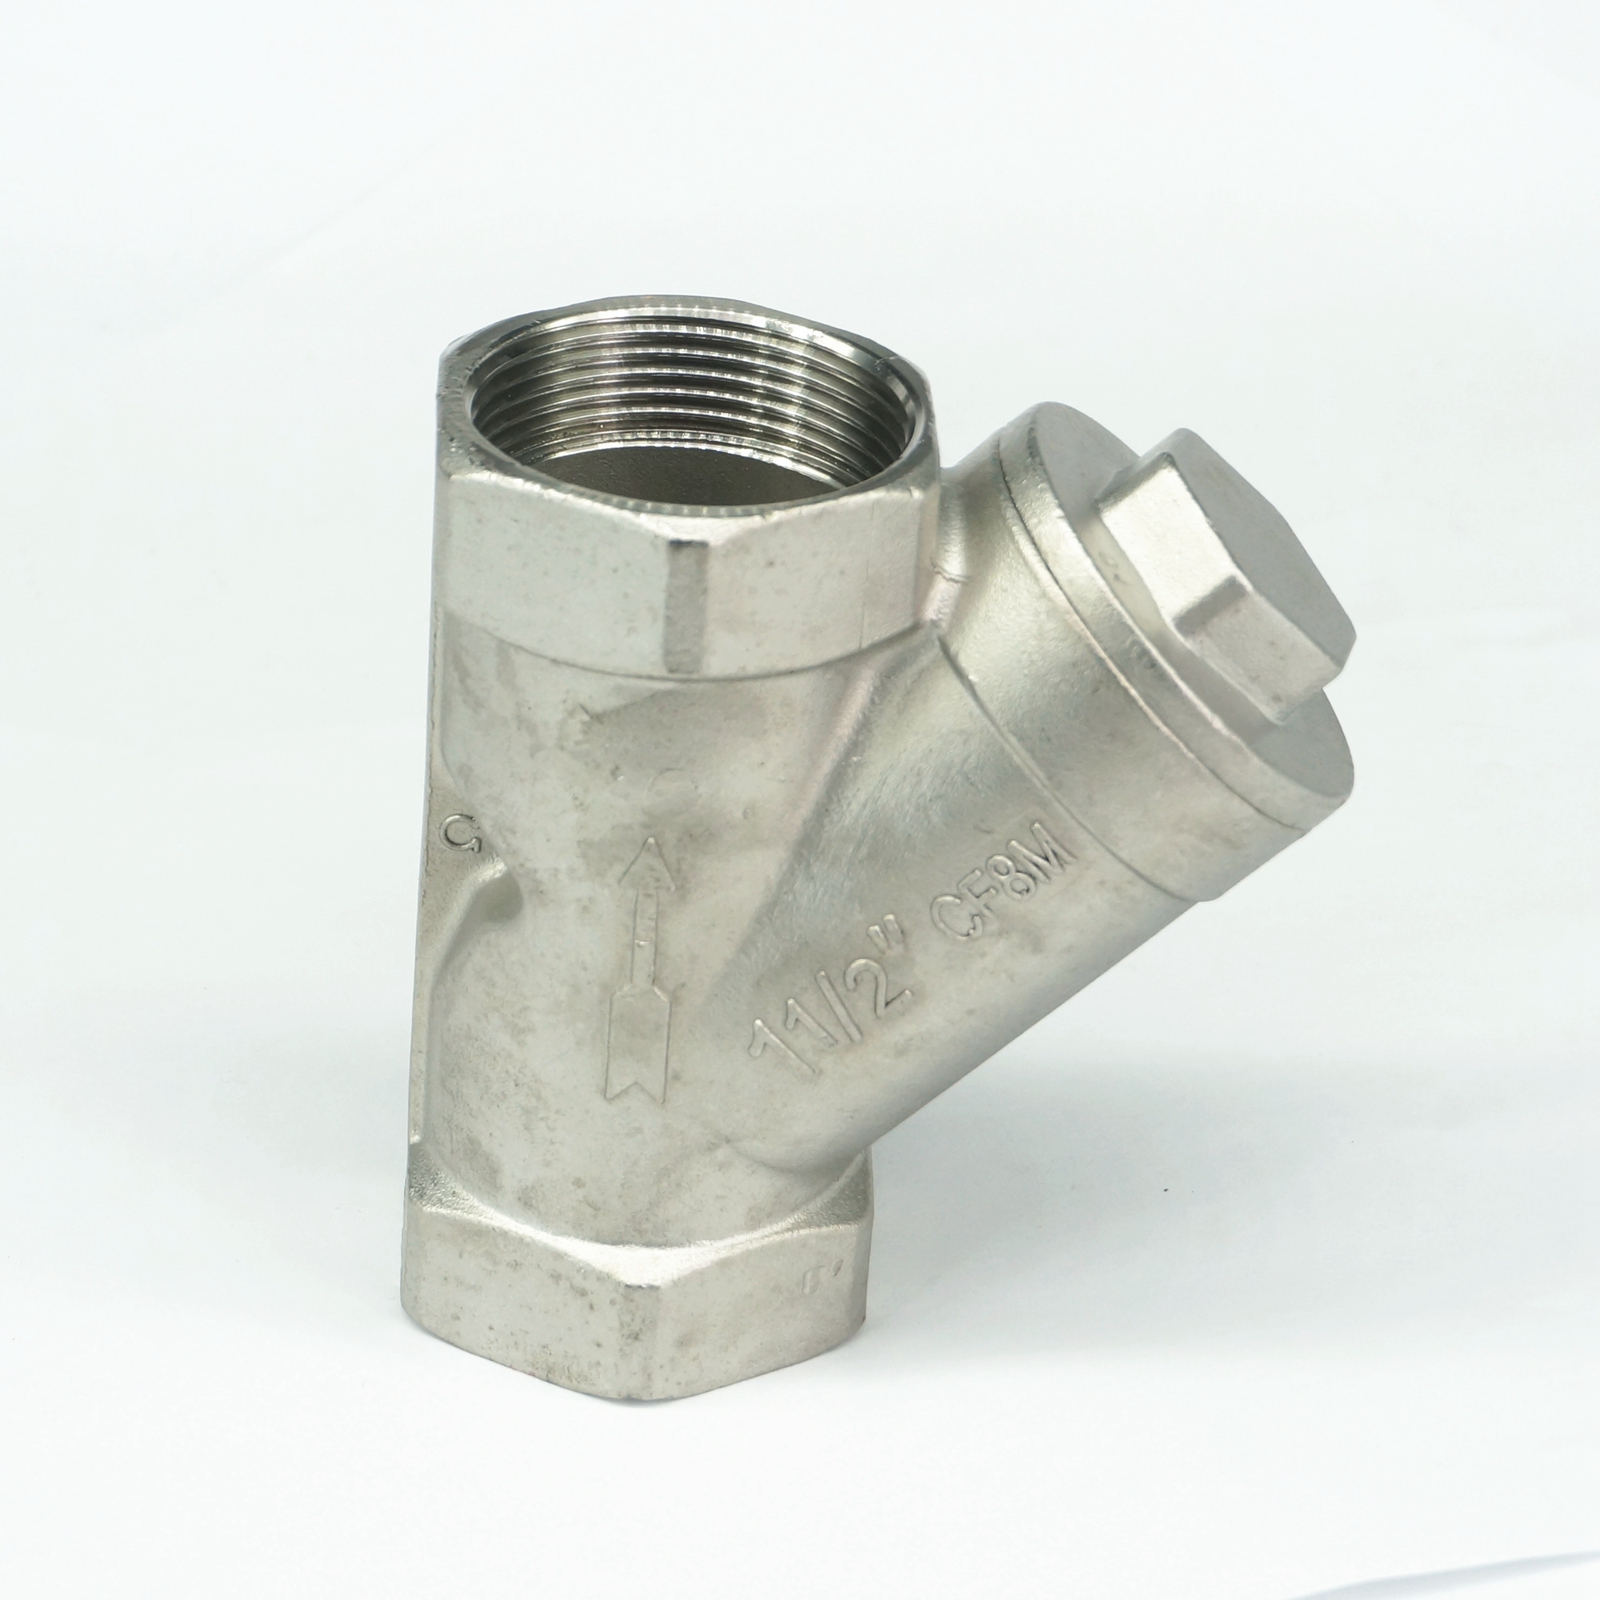 w// Strainer Filter DN40 1-1//2 Inch Brass Foot Valve Mesh for Water Oil